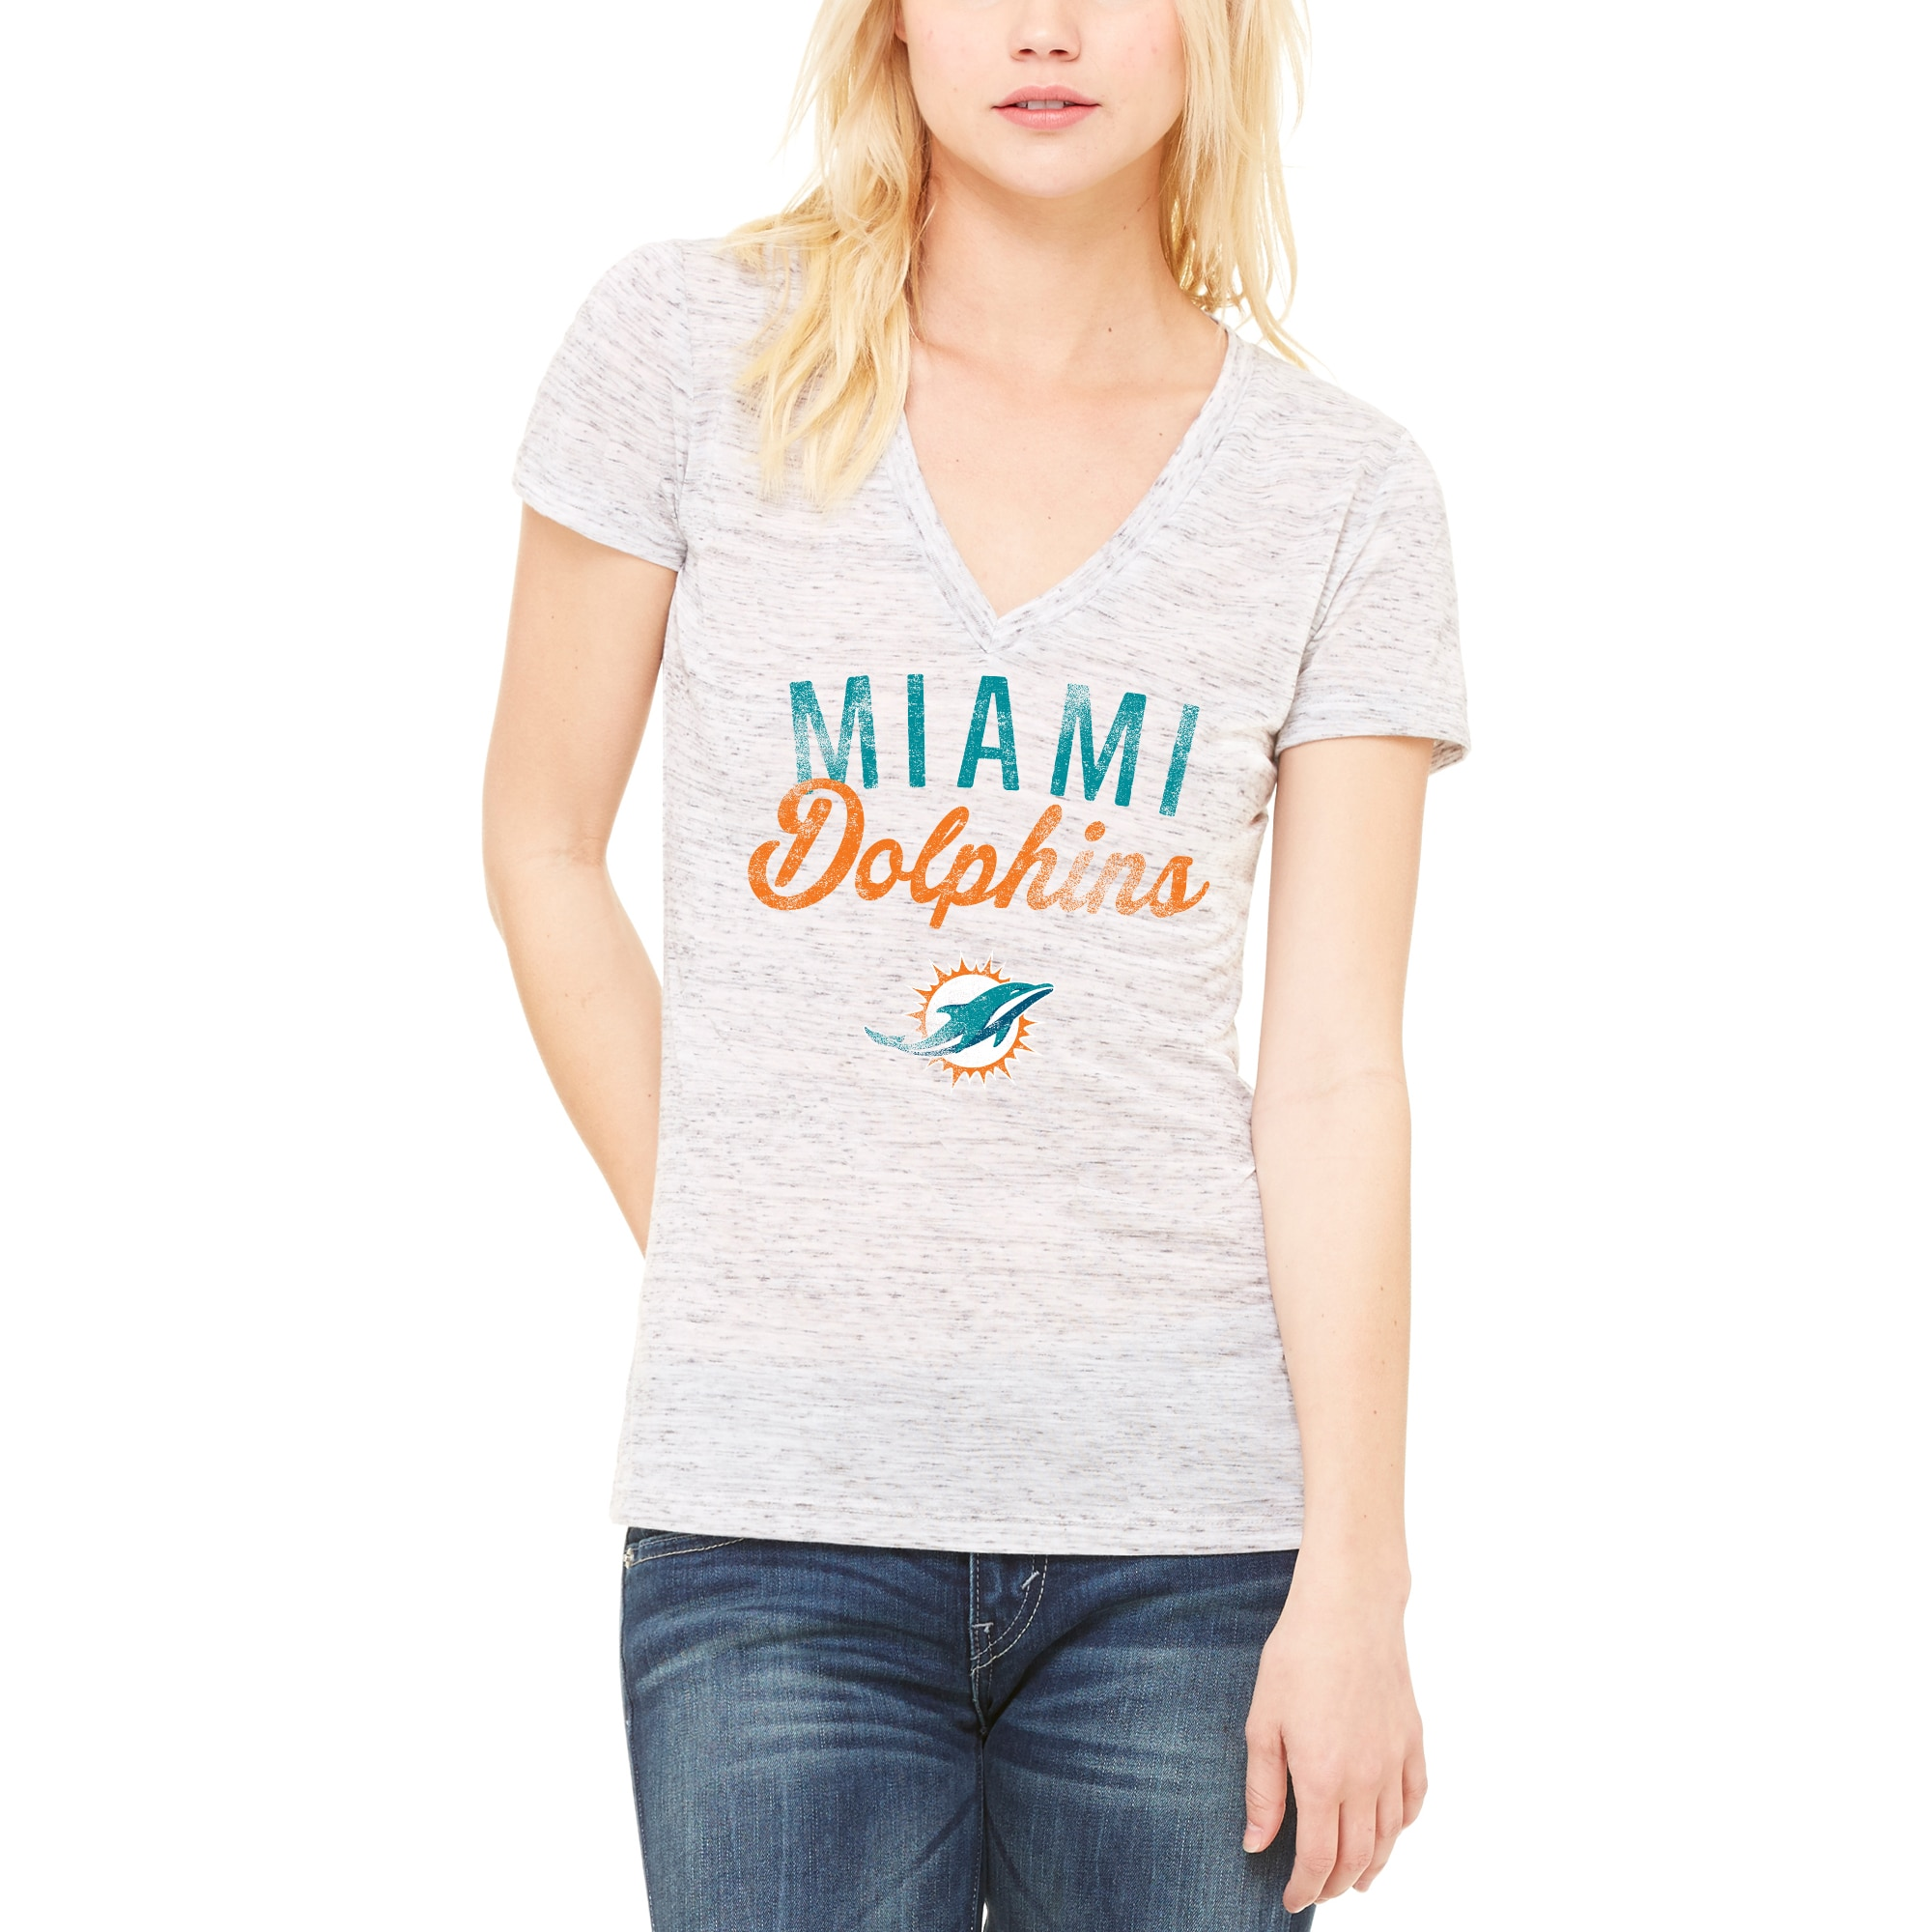 Miami Dolphins Let Loose by RNL Women's Endless V-Neck T-Shirt - White